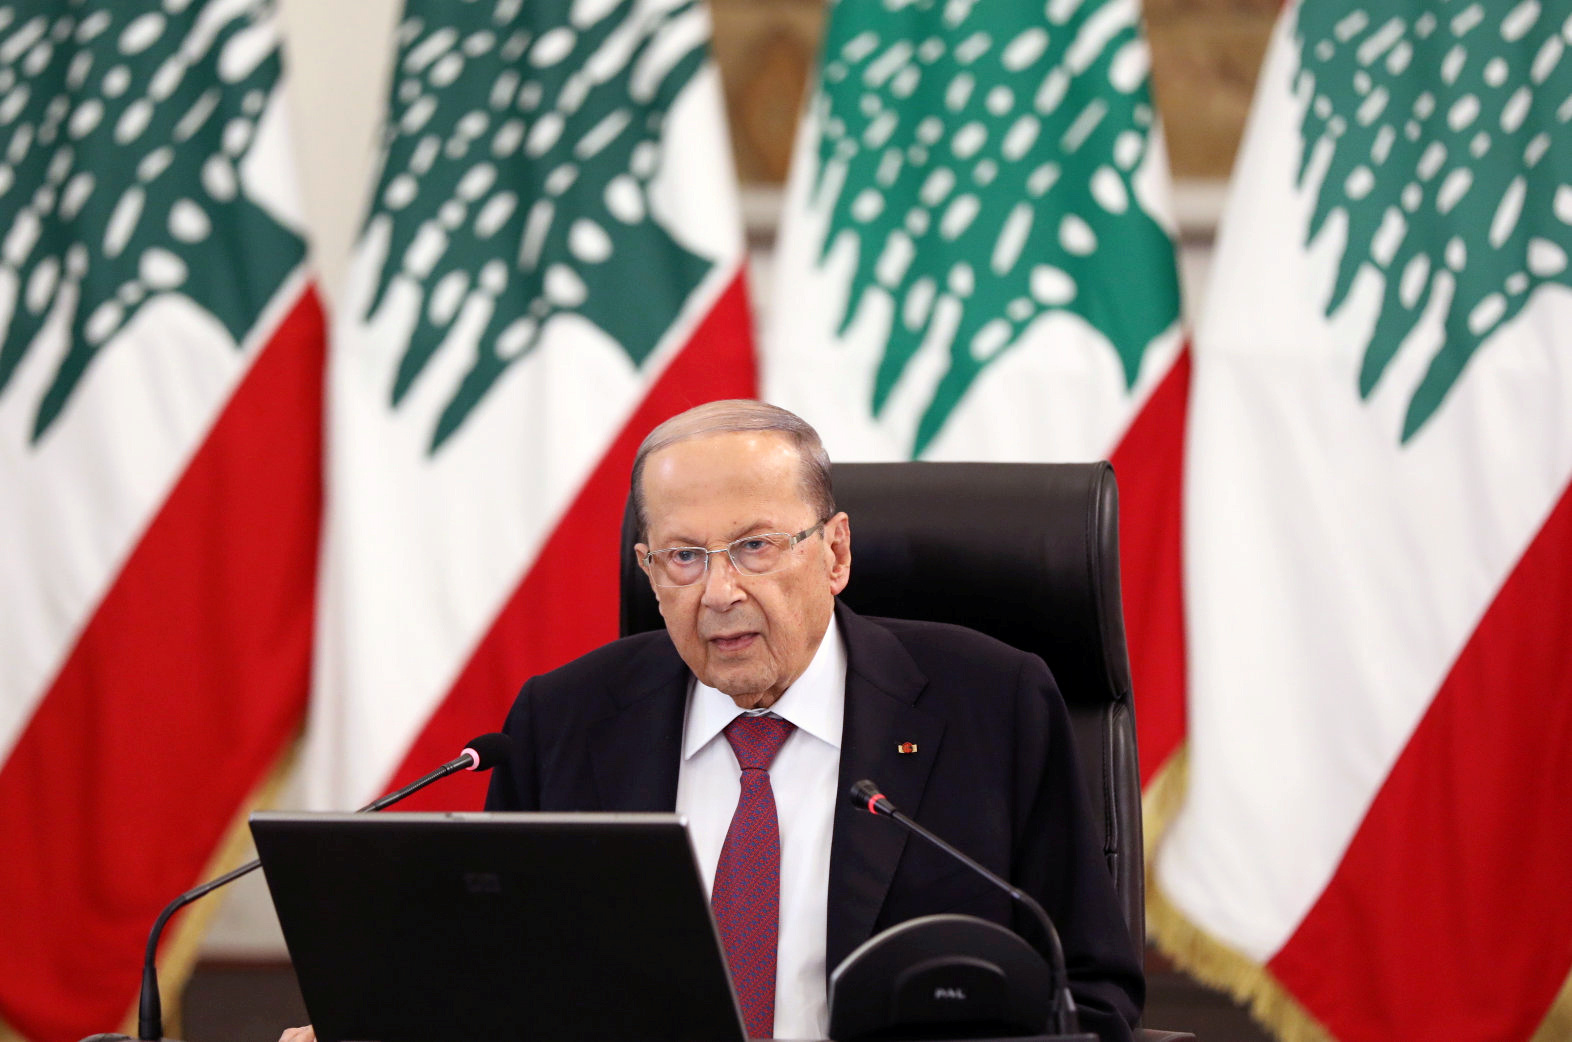 Lebanon's President Michel Aoun delivers a speech at the presidential palace in Baabda, Lebanon, June 25, 2020. REUTERS/Mohamed Azakir